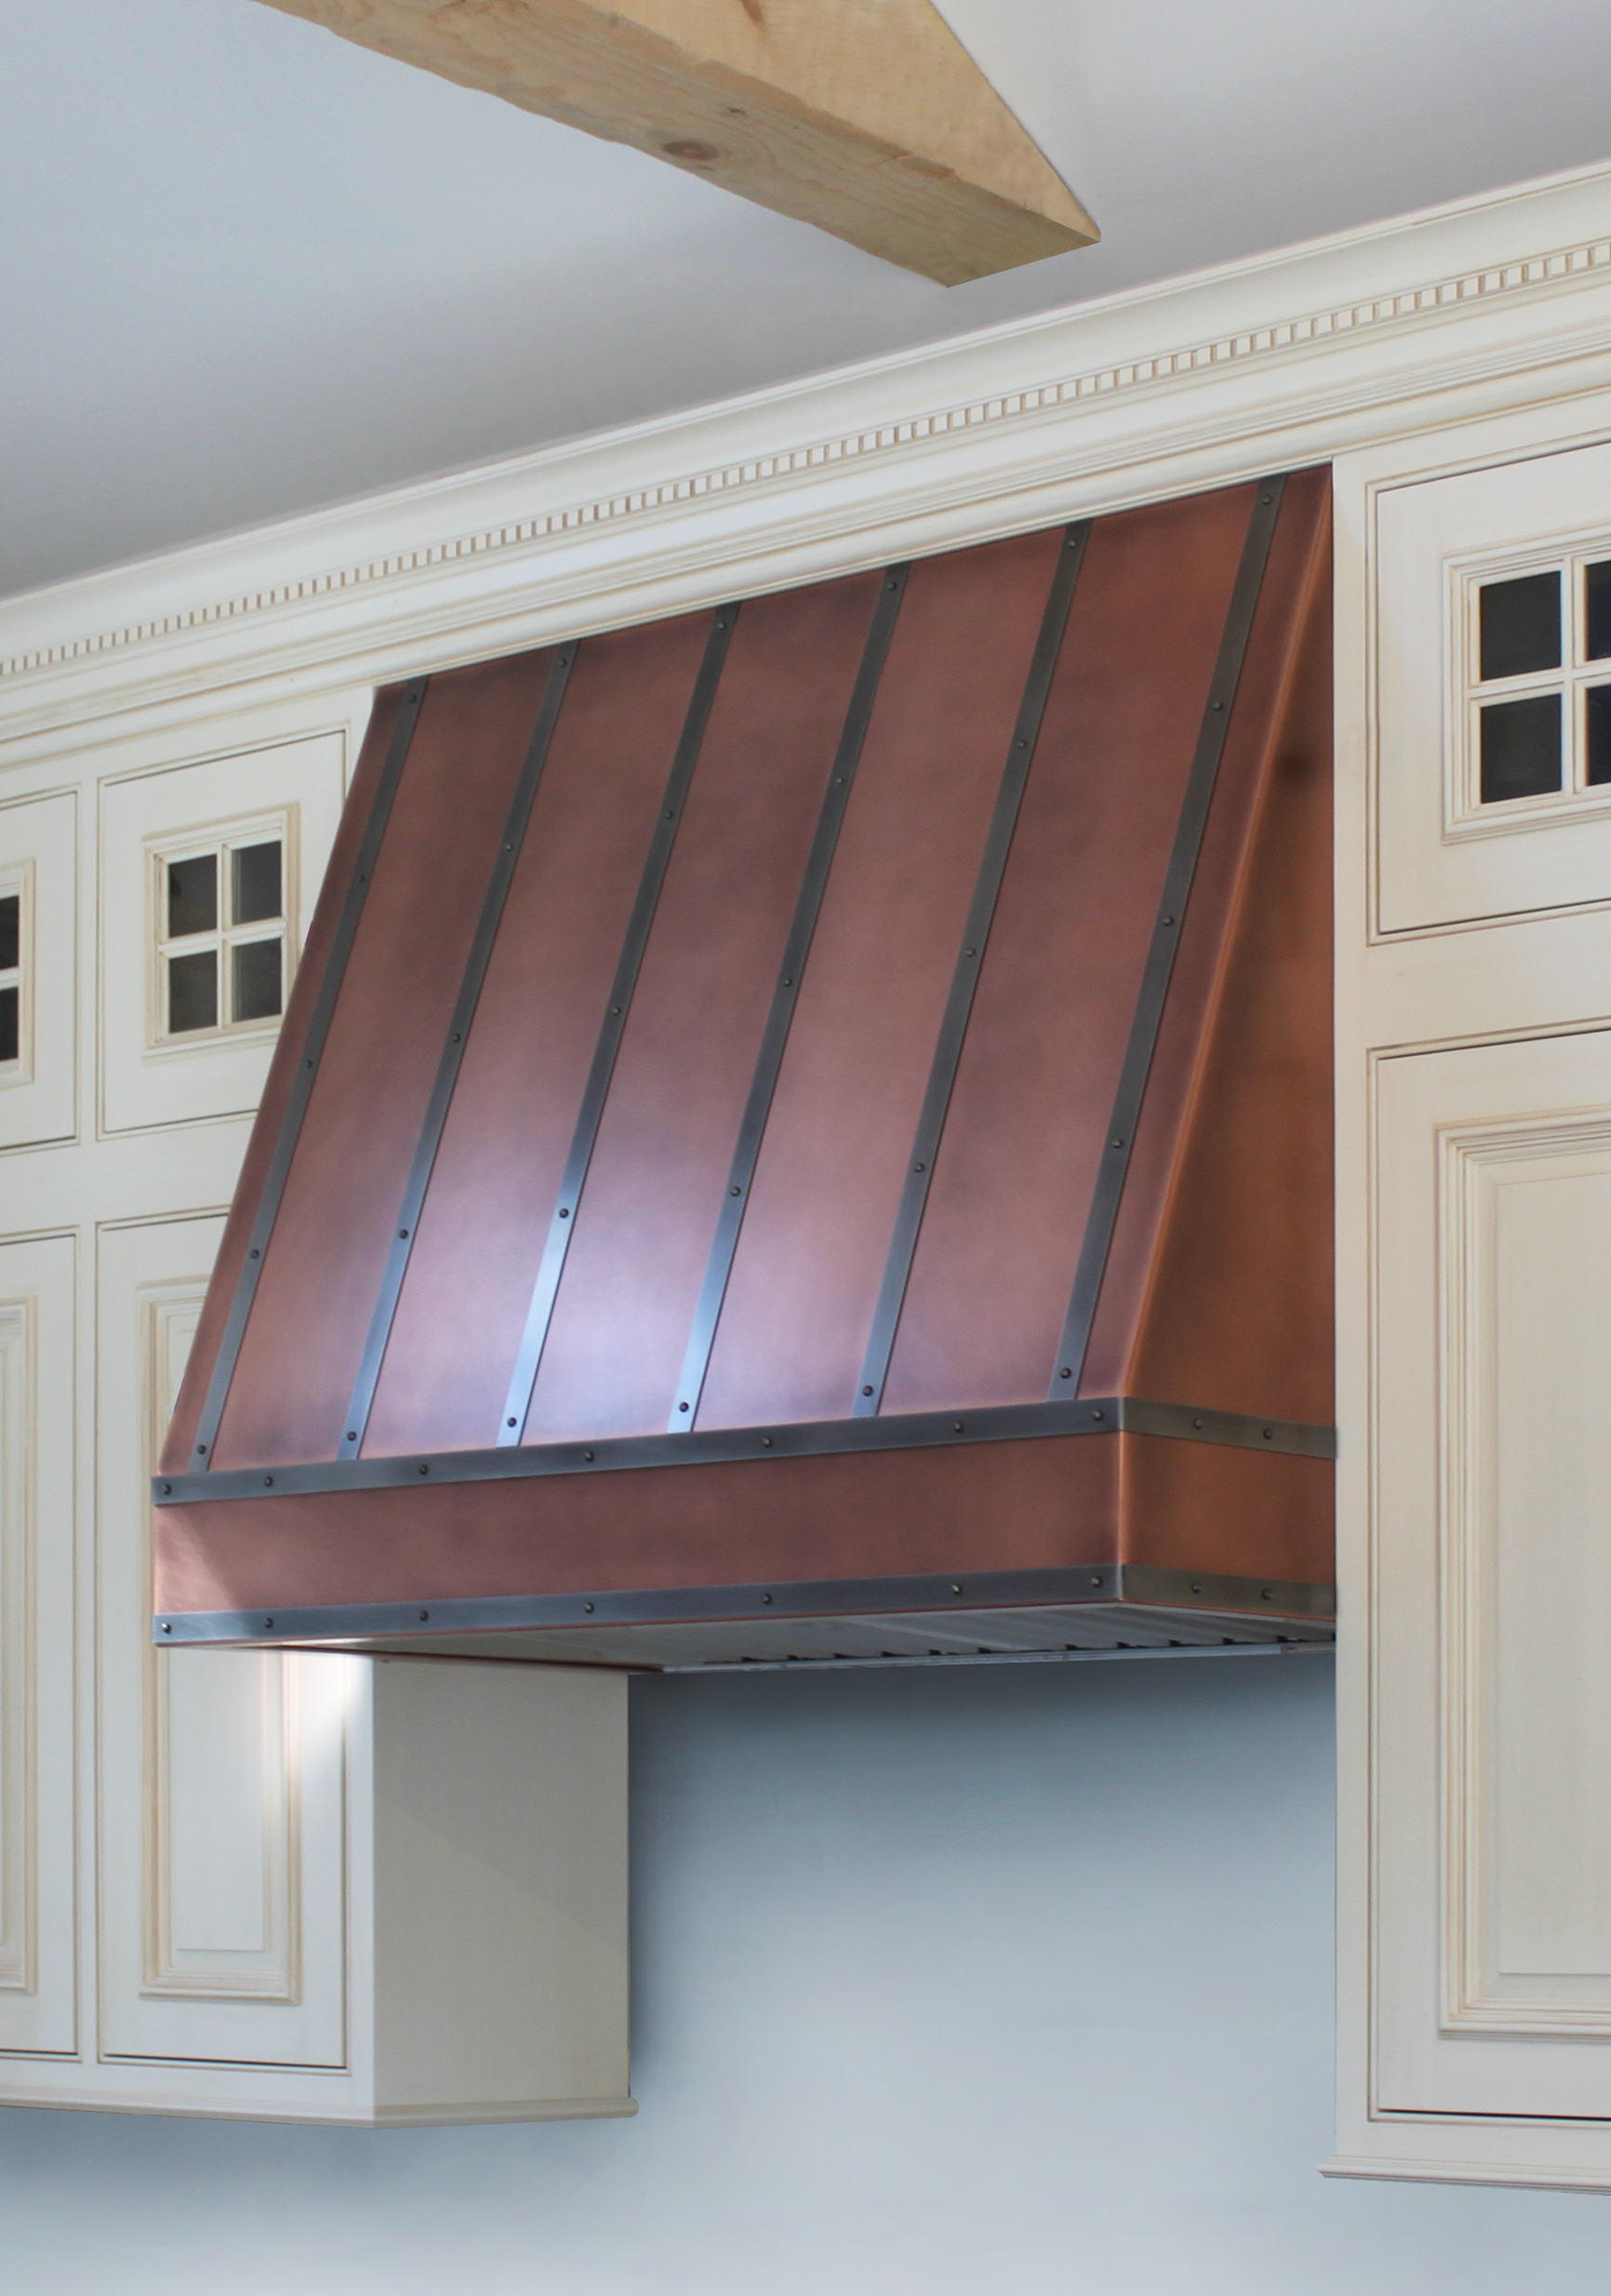 Wall mounted Elite in Antique copper with black powdercoat banding.